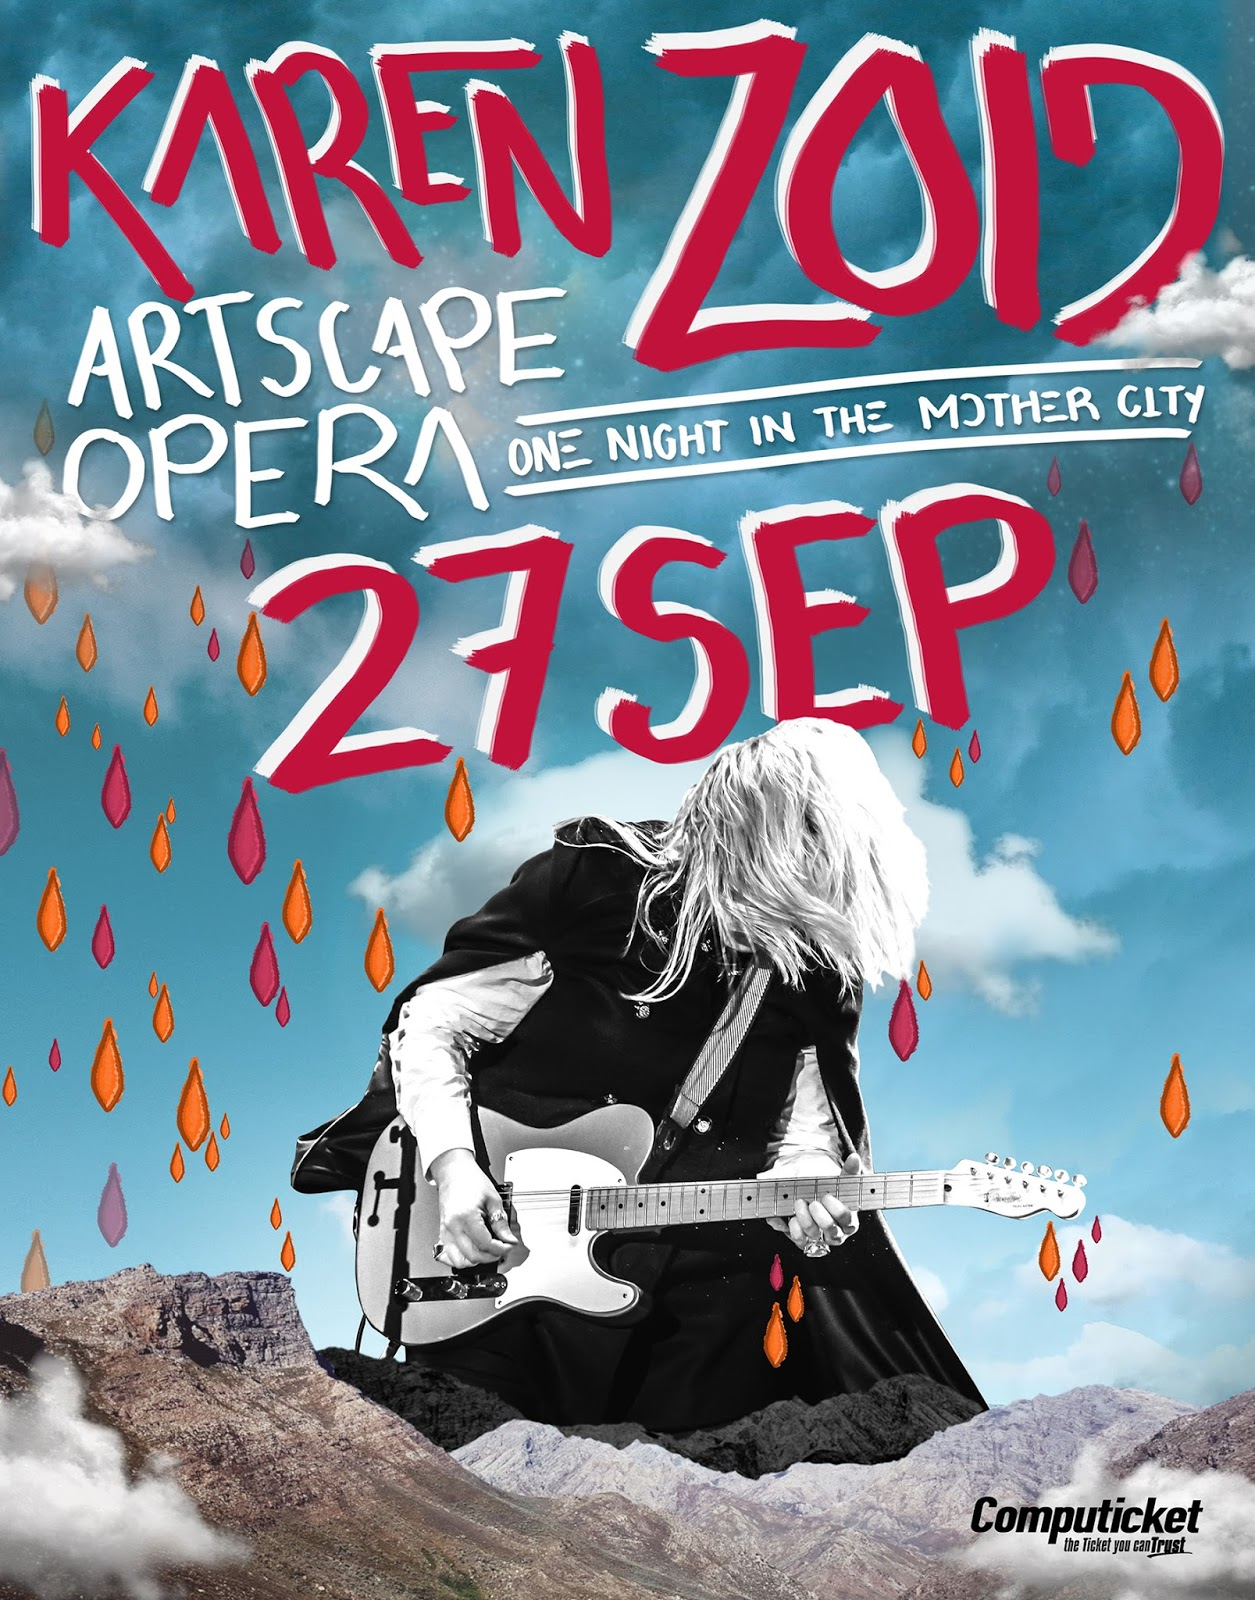 Karen zoid a special one night show at artscape opera for Small room karen zoid lyrics